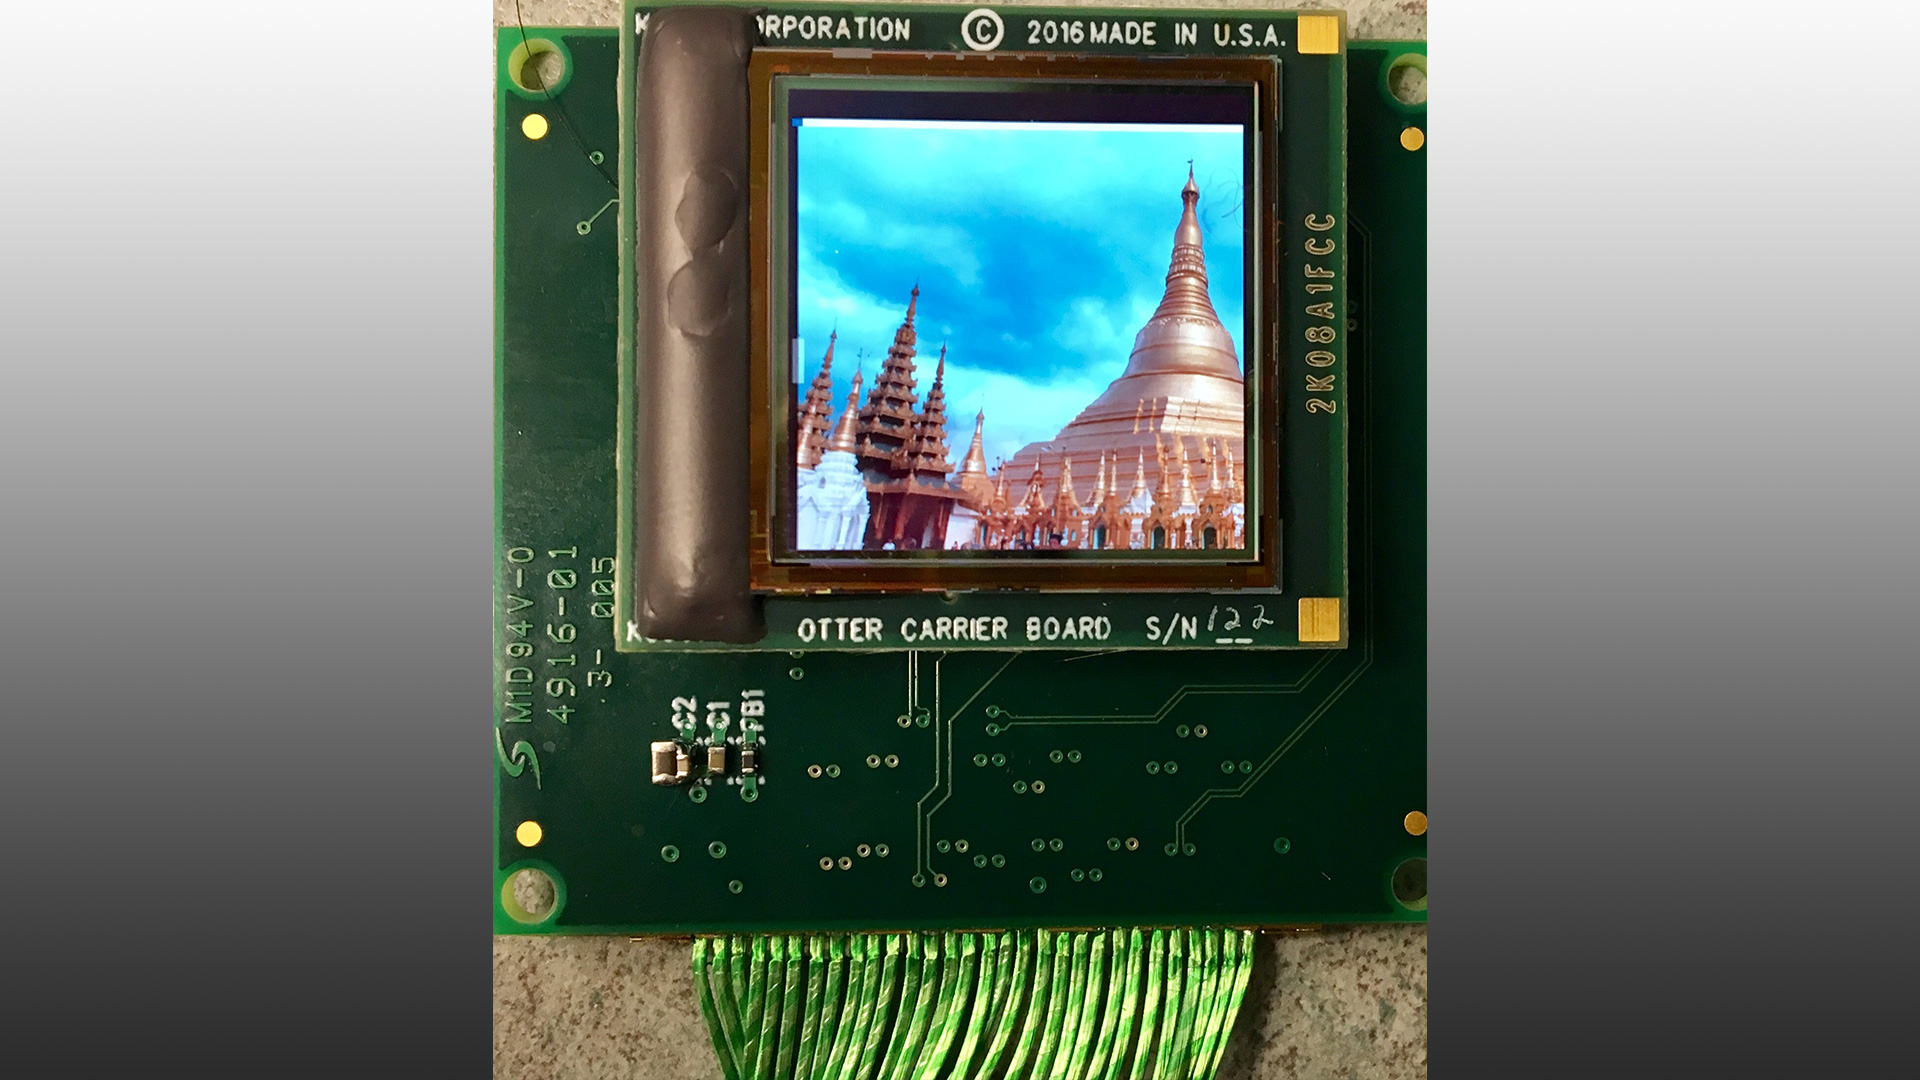 The micro-display market will be worth over US$3 billion by